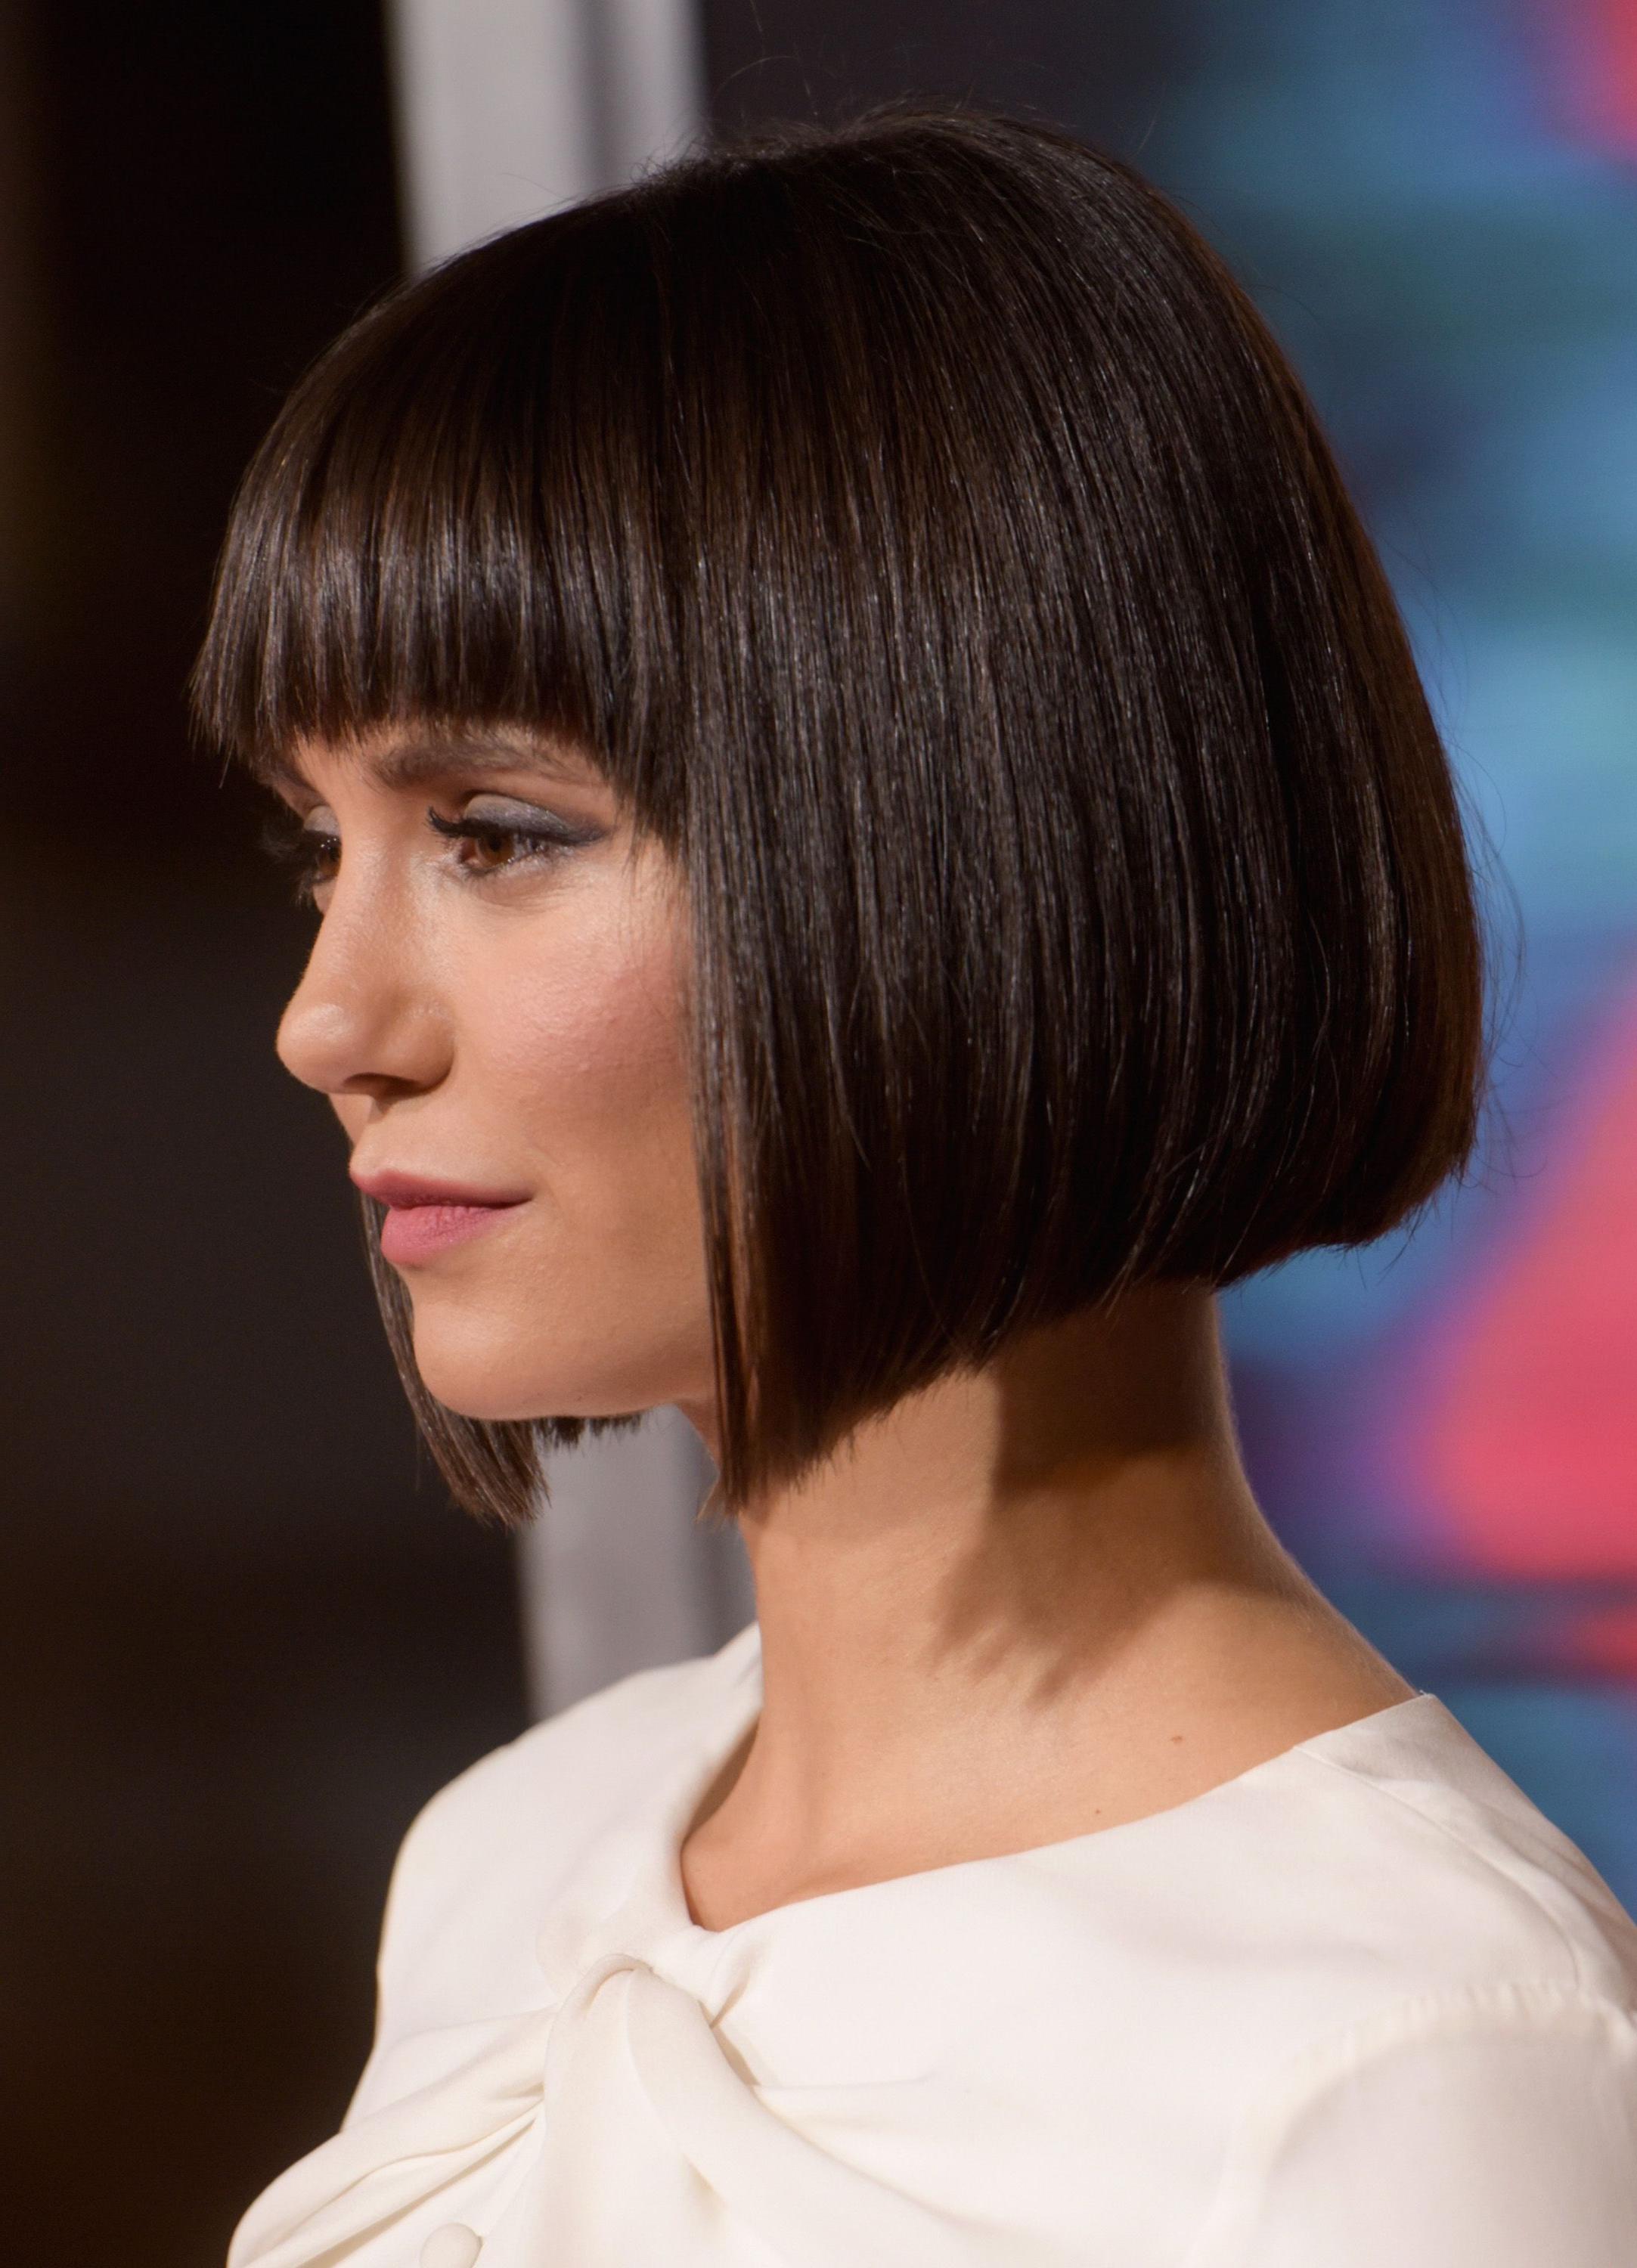 50 Best Bob Styles Of 2018 – Bob Haircuts & Hairstyles For Women Intended For Famous Medium Hairstyles Cut Around The Ears (View 4 of 20)